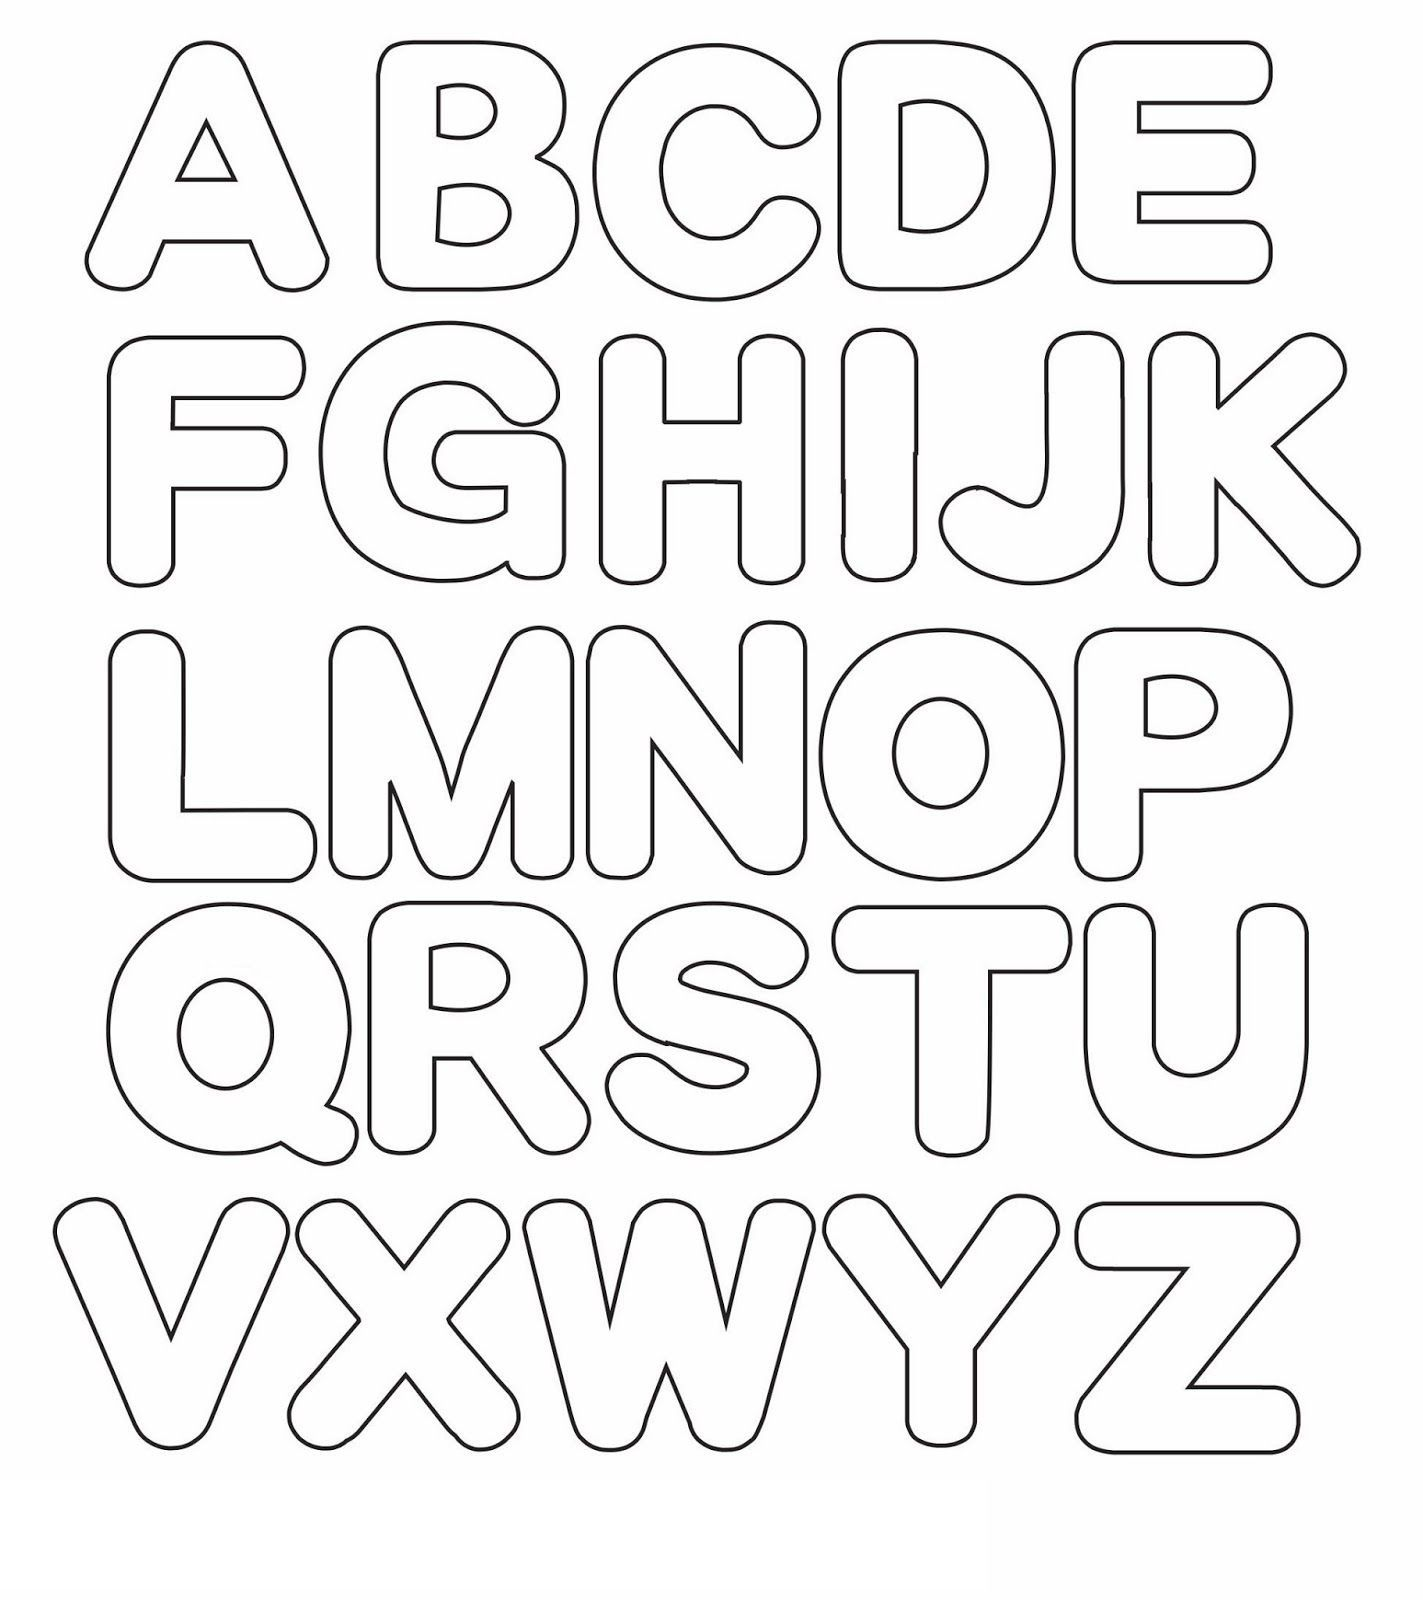 Alphabet Template To Print